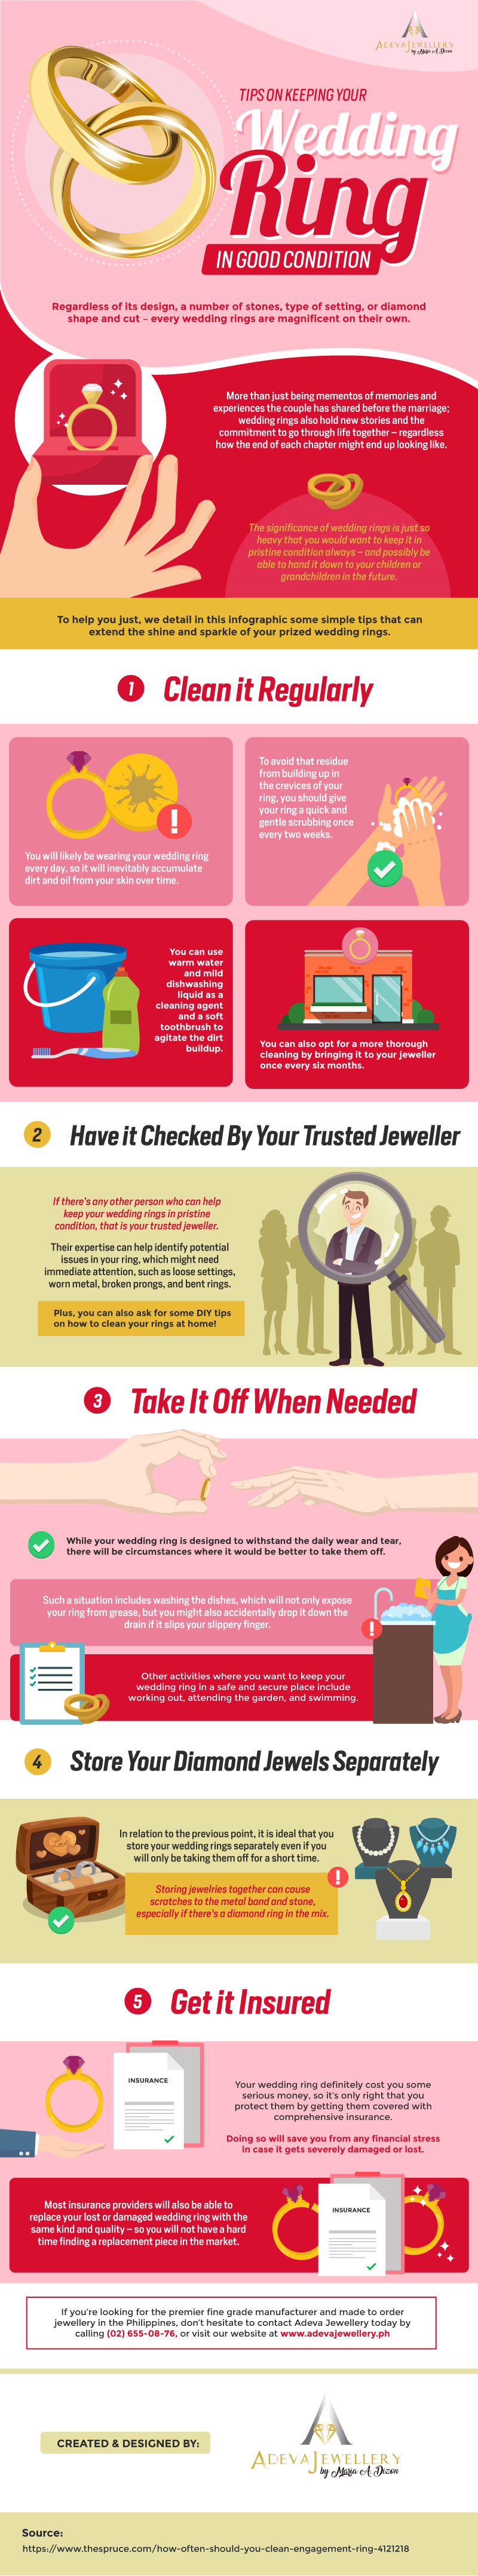 Tips on Keeping your Wedding Ring in Good Condition-01.png